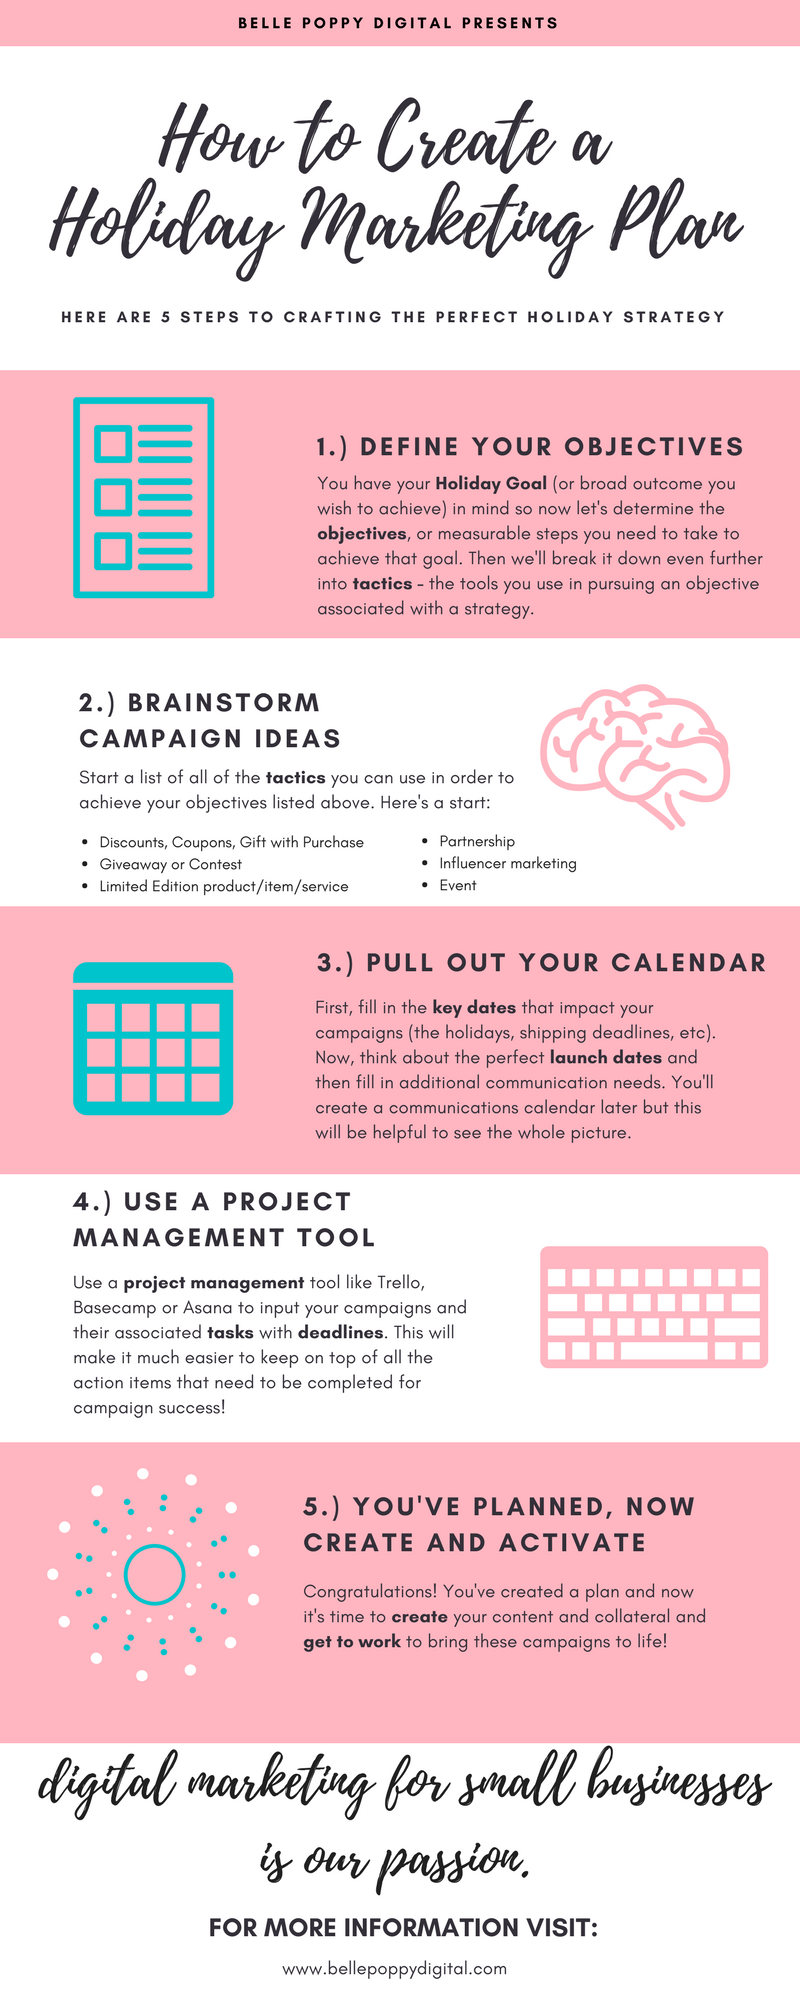 How to Create the Perfect Holiday Marketing Plan 2017 Edition